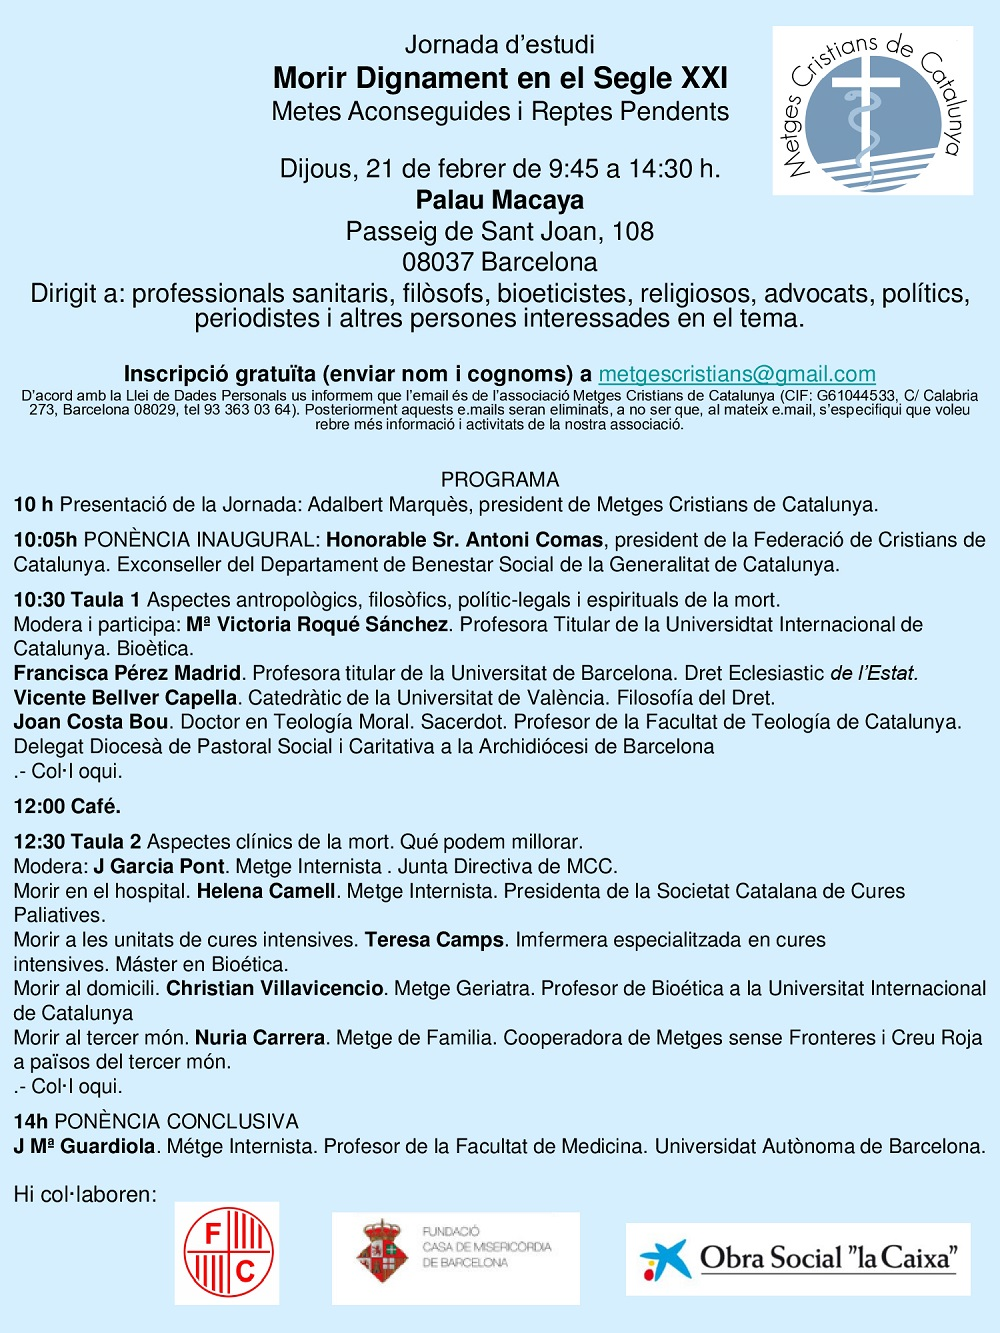 Programa-MDS21-per-WP-cat